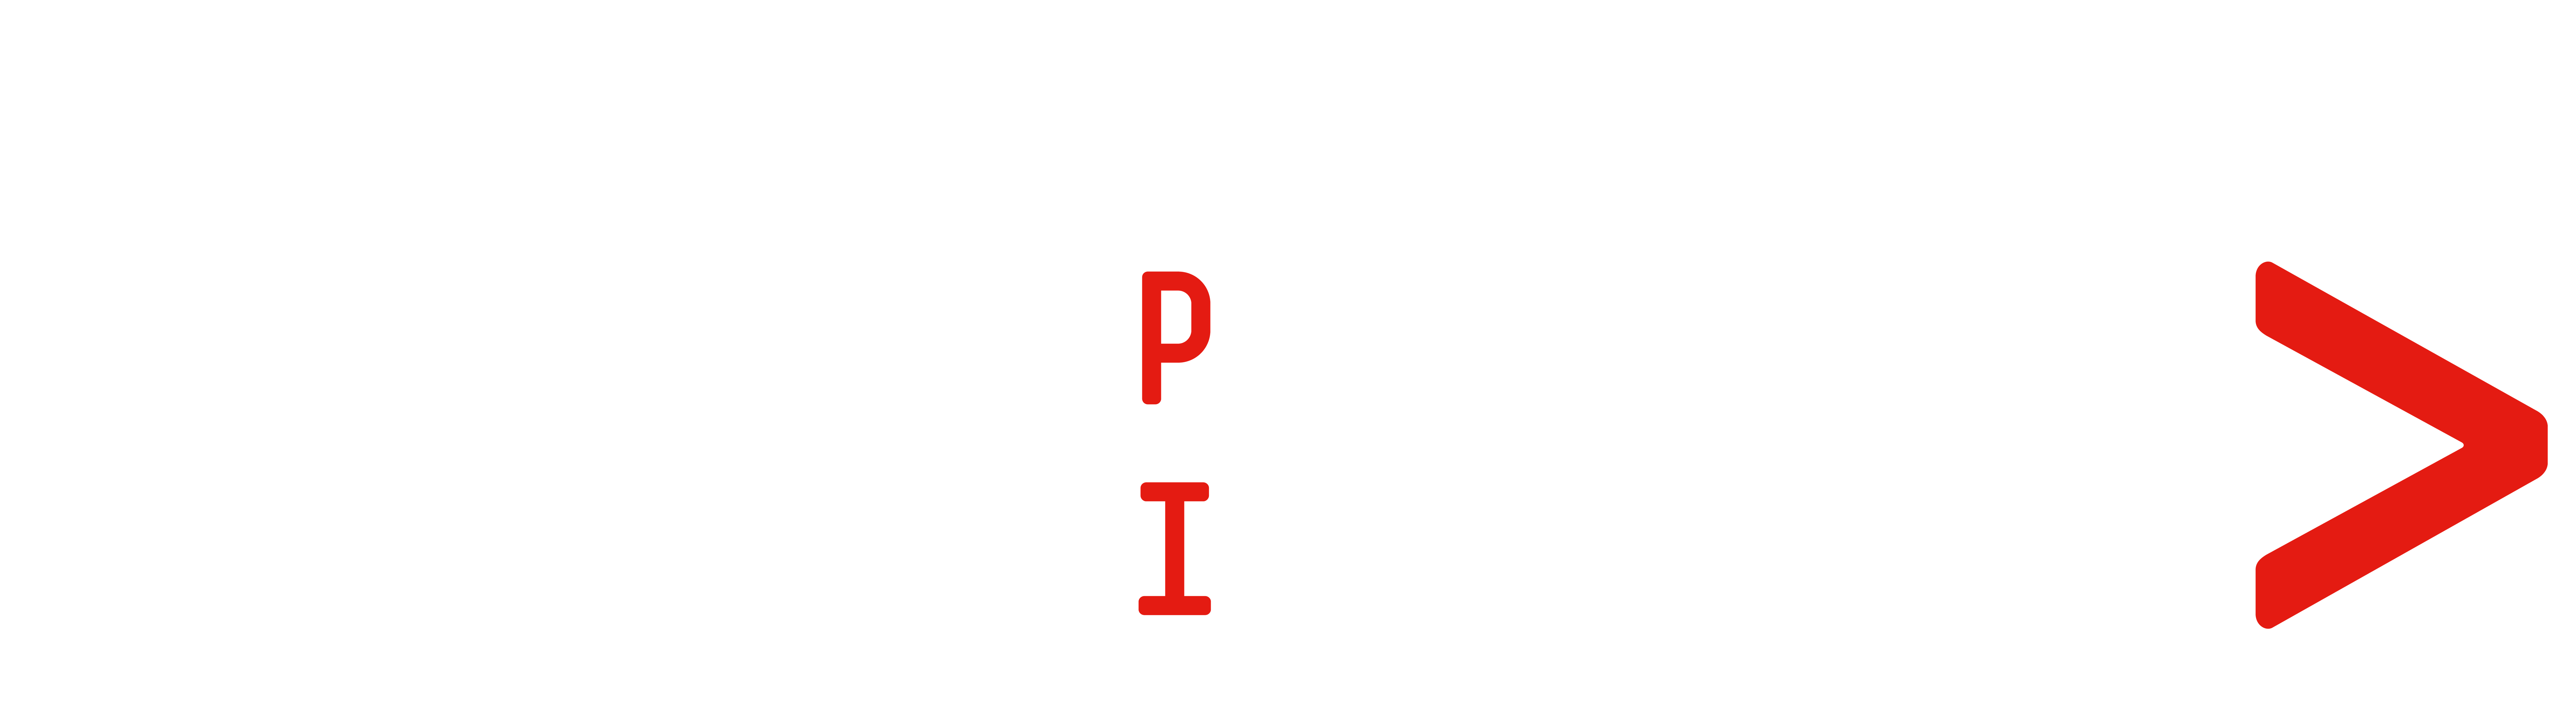 RCF Protecting Innovation